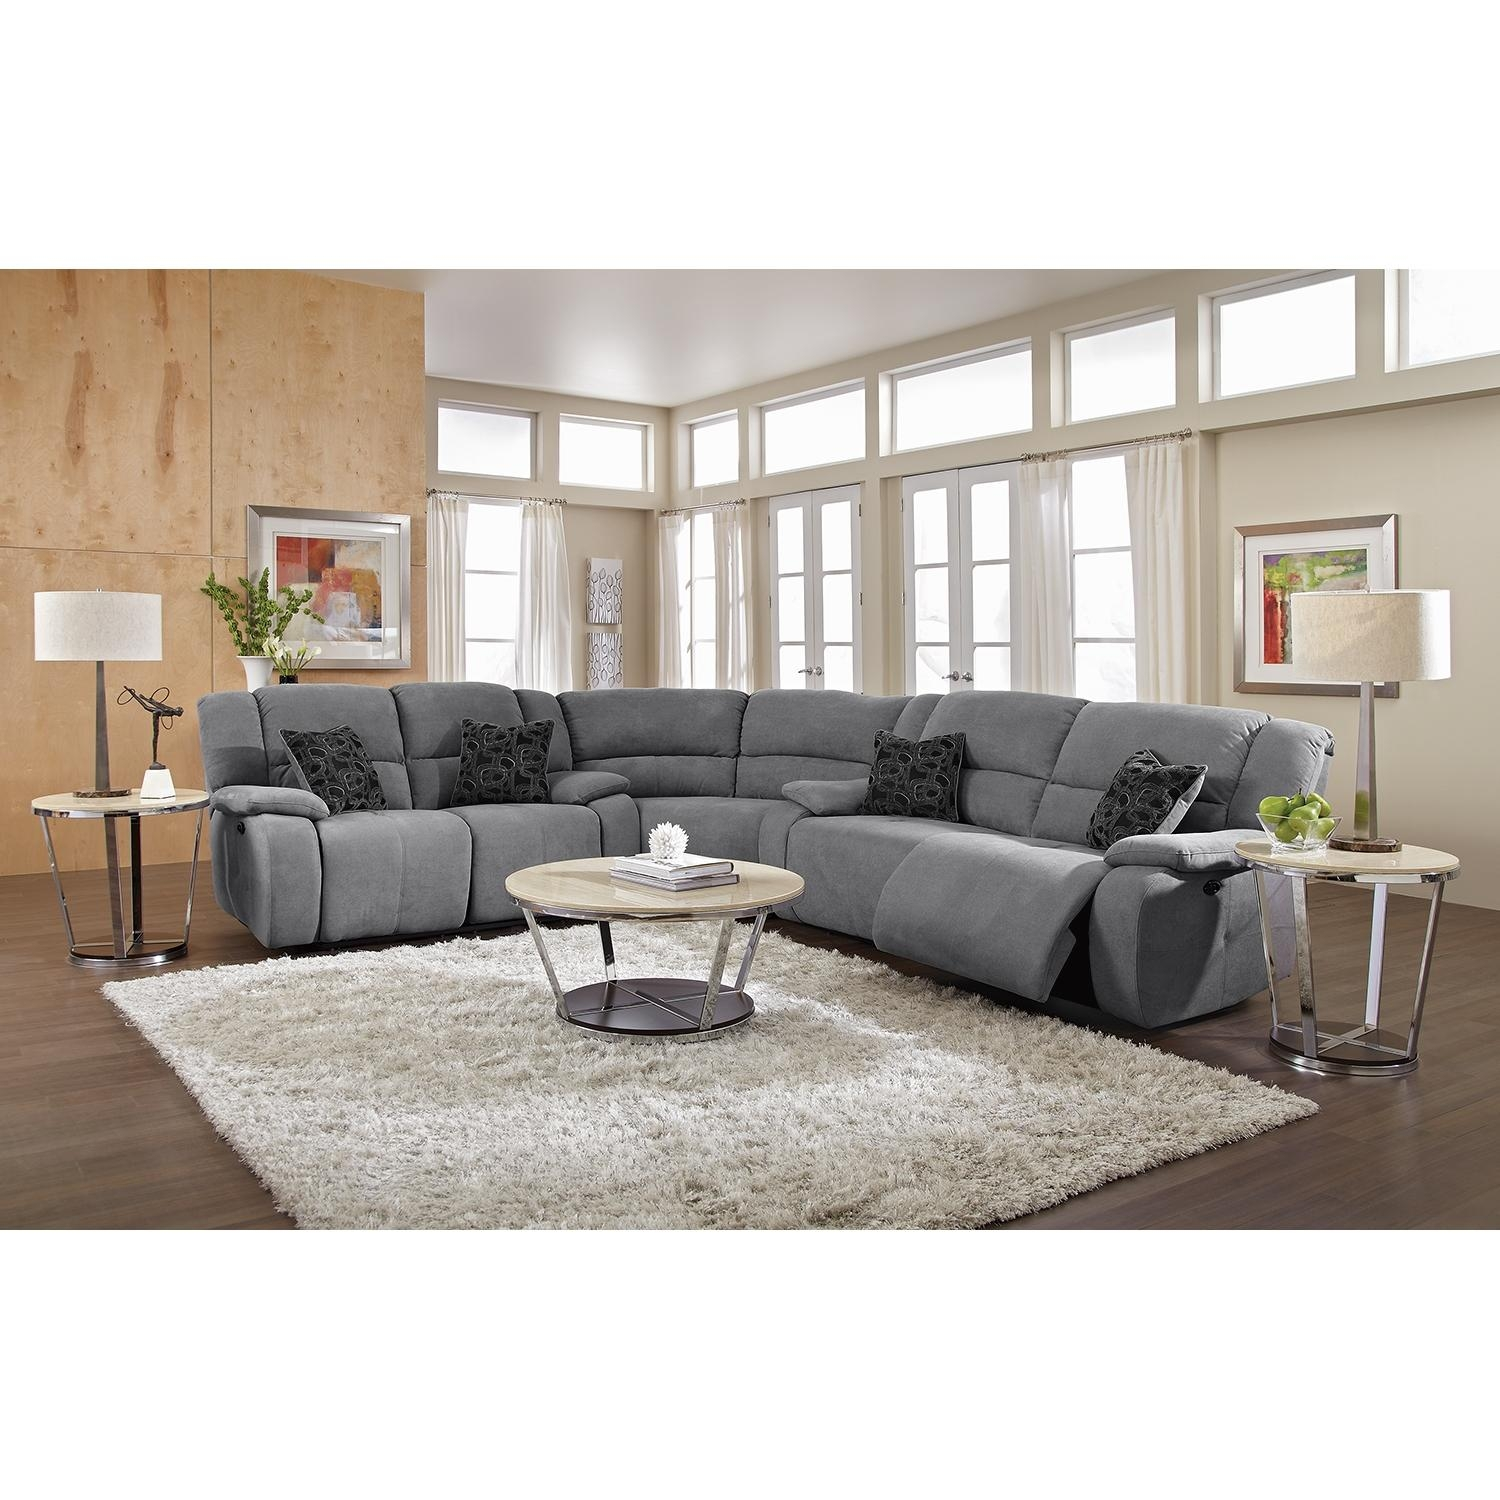 Reclining Sectional Sofa – Helpformycredit Intended For Recliner Sectional Sofas (Image 16 of 22)